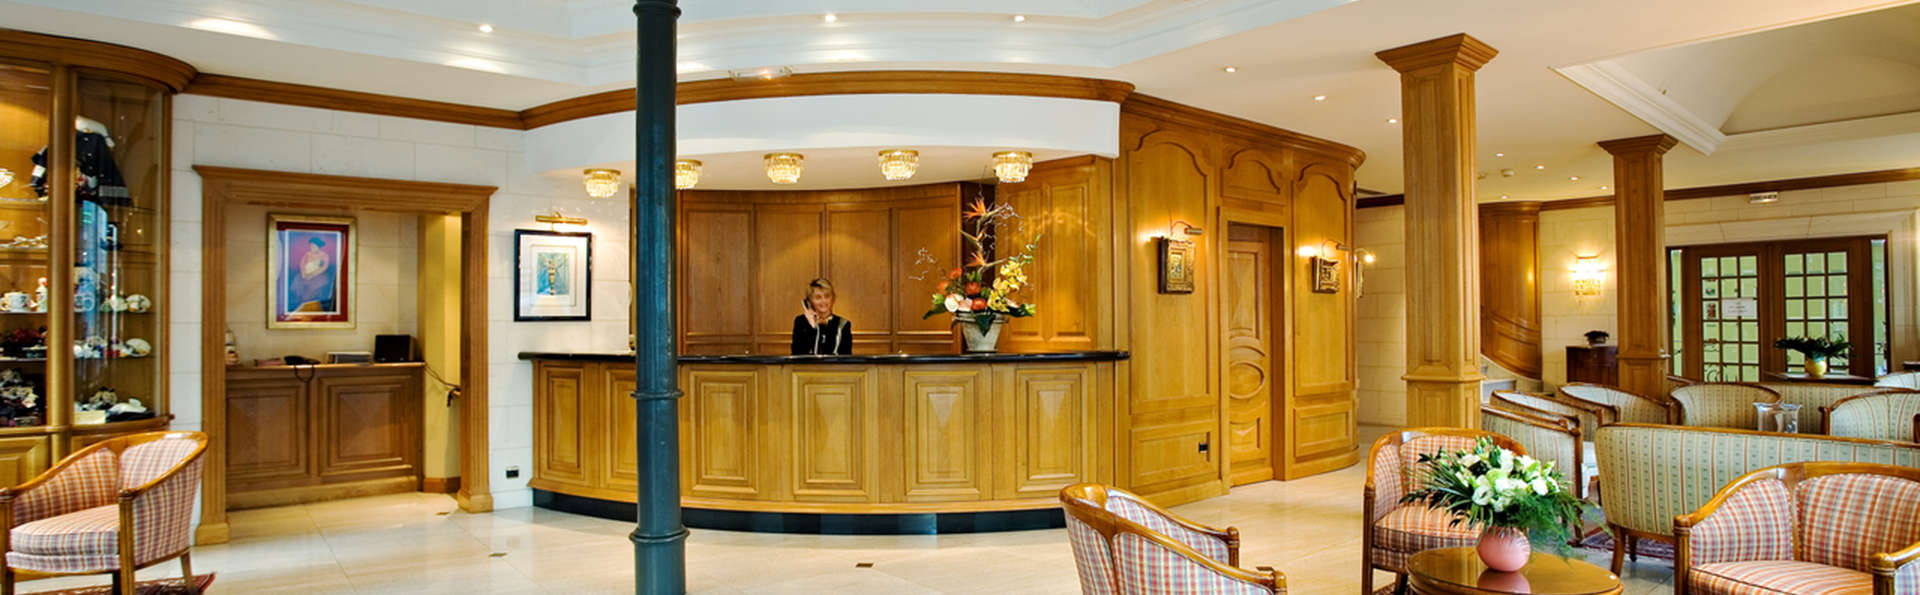 Hôtel Bristol Mulhouse - EDIT_reception.jpg